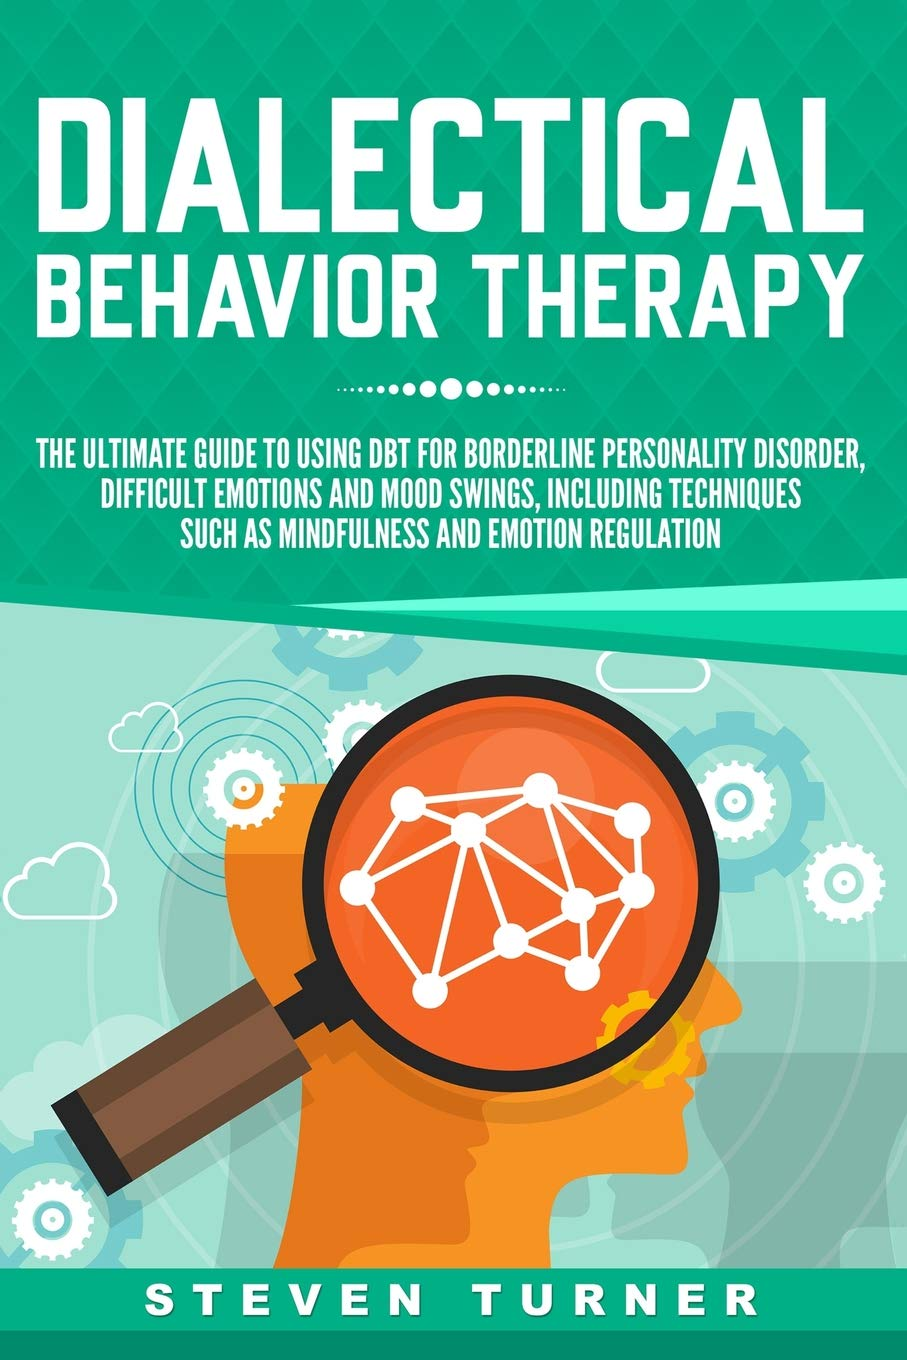 The Ultimate Guide for Using DBT for Borderline Personality Disorder, Difficult Emotions and Mood Swings, Including Techniques such as Mindfulness and Emotion Regulation - Steven Turner